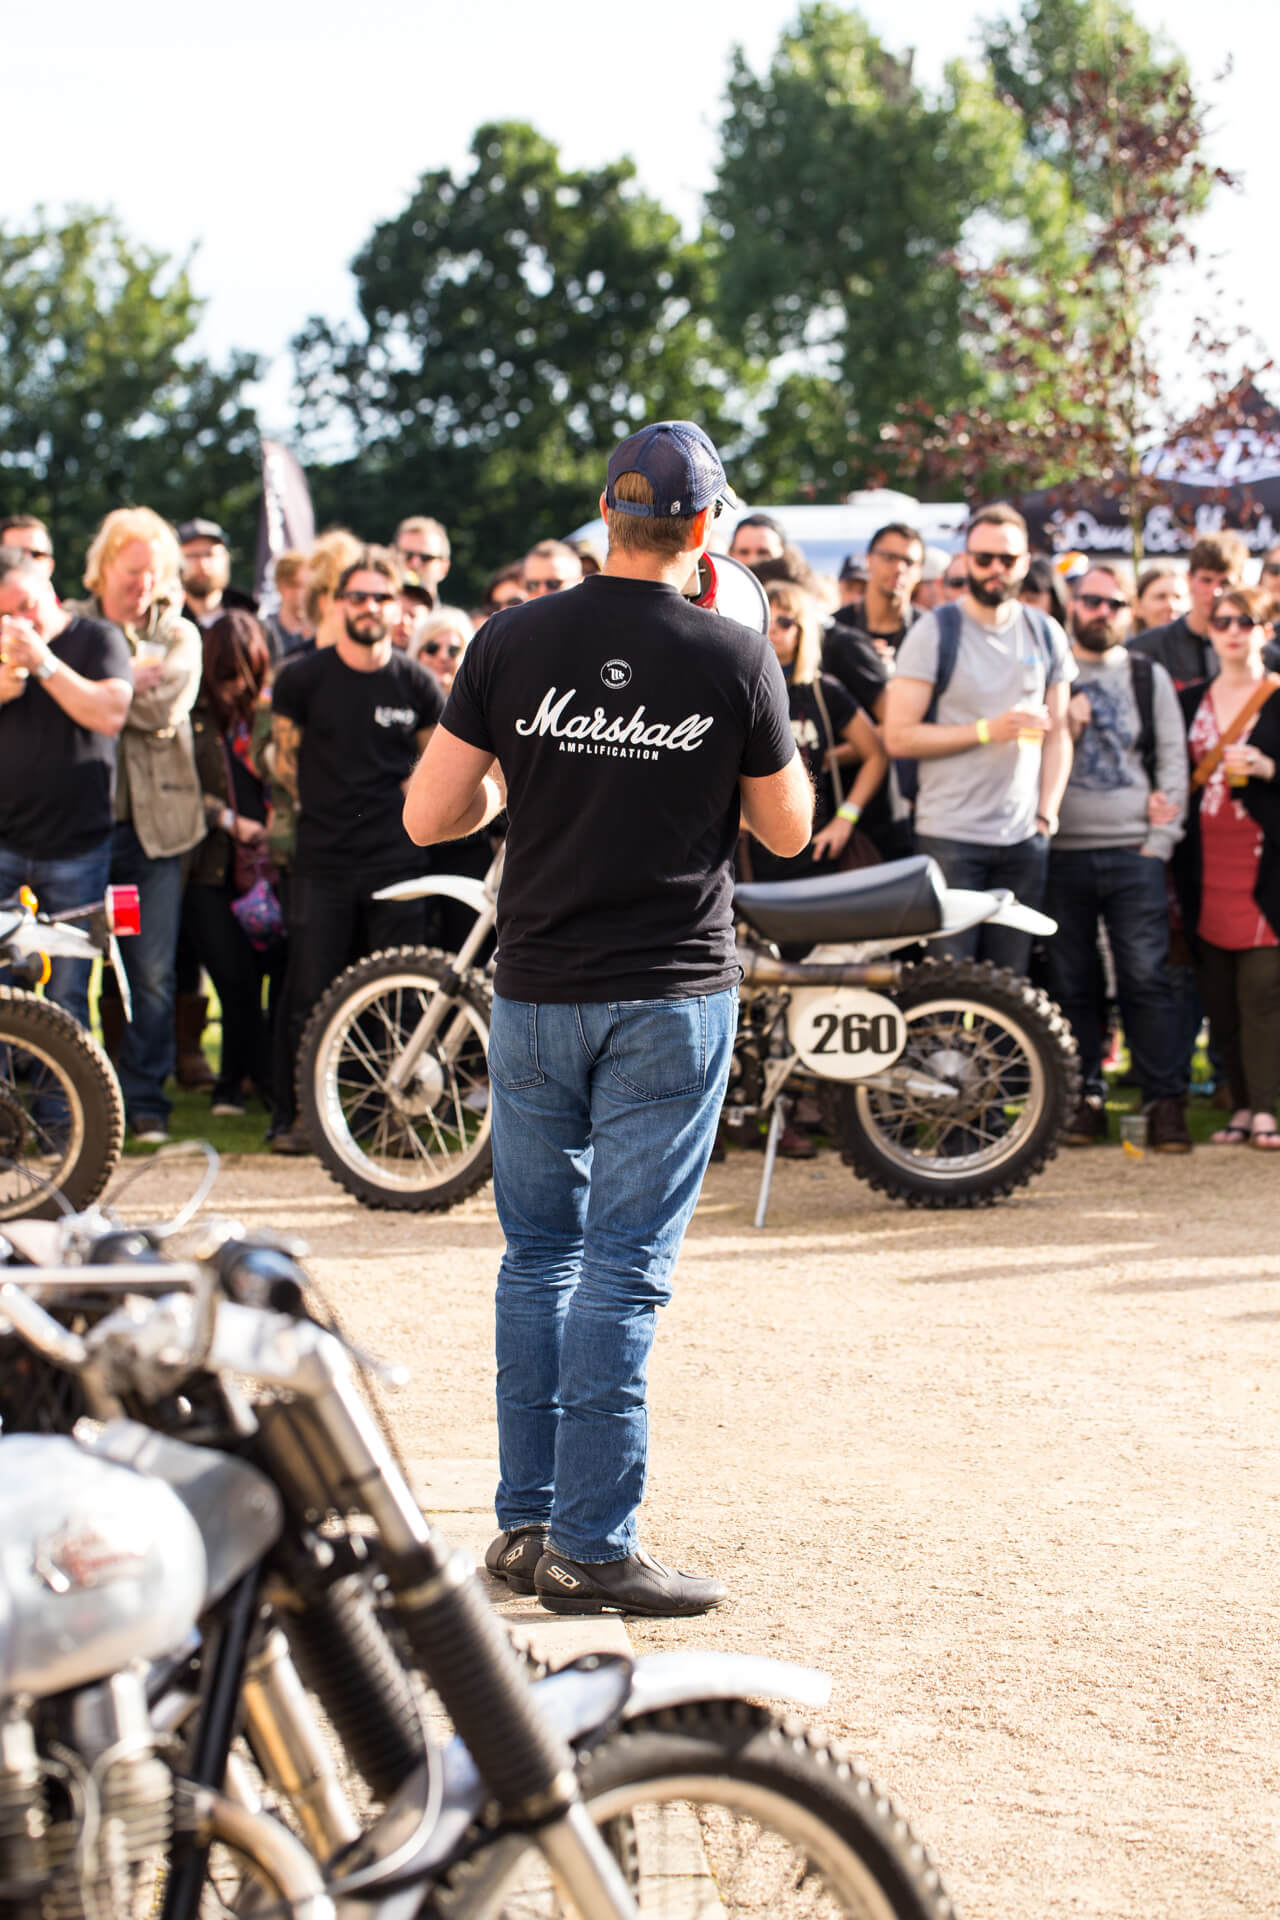 Malle Mile, Event, Motorcycle, Richard, Summer, WeAreShuffle, Agency, Photography, Film, Production, Malle London, Triumph, Flag, Biker, Movember